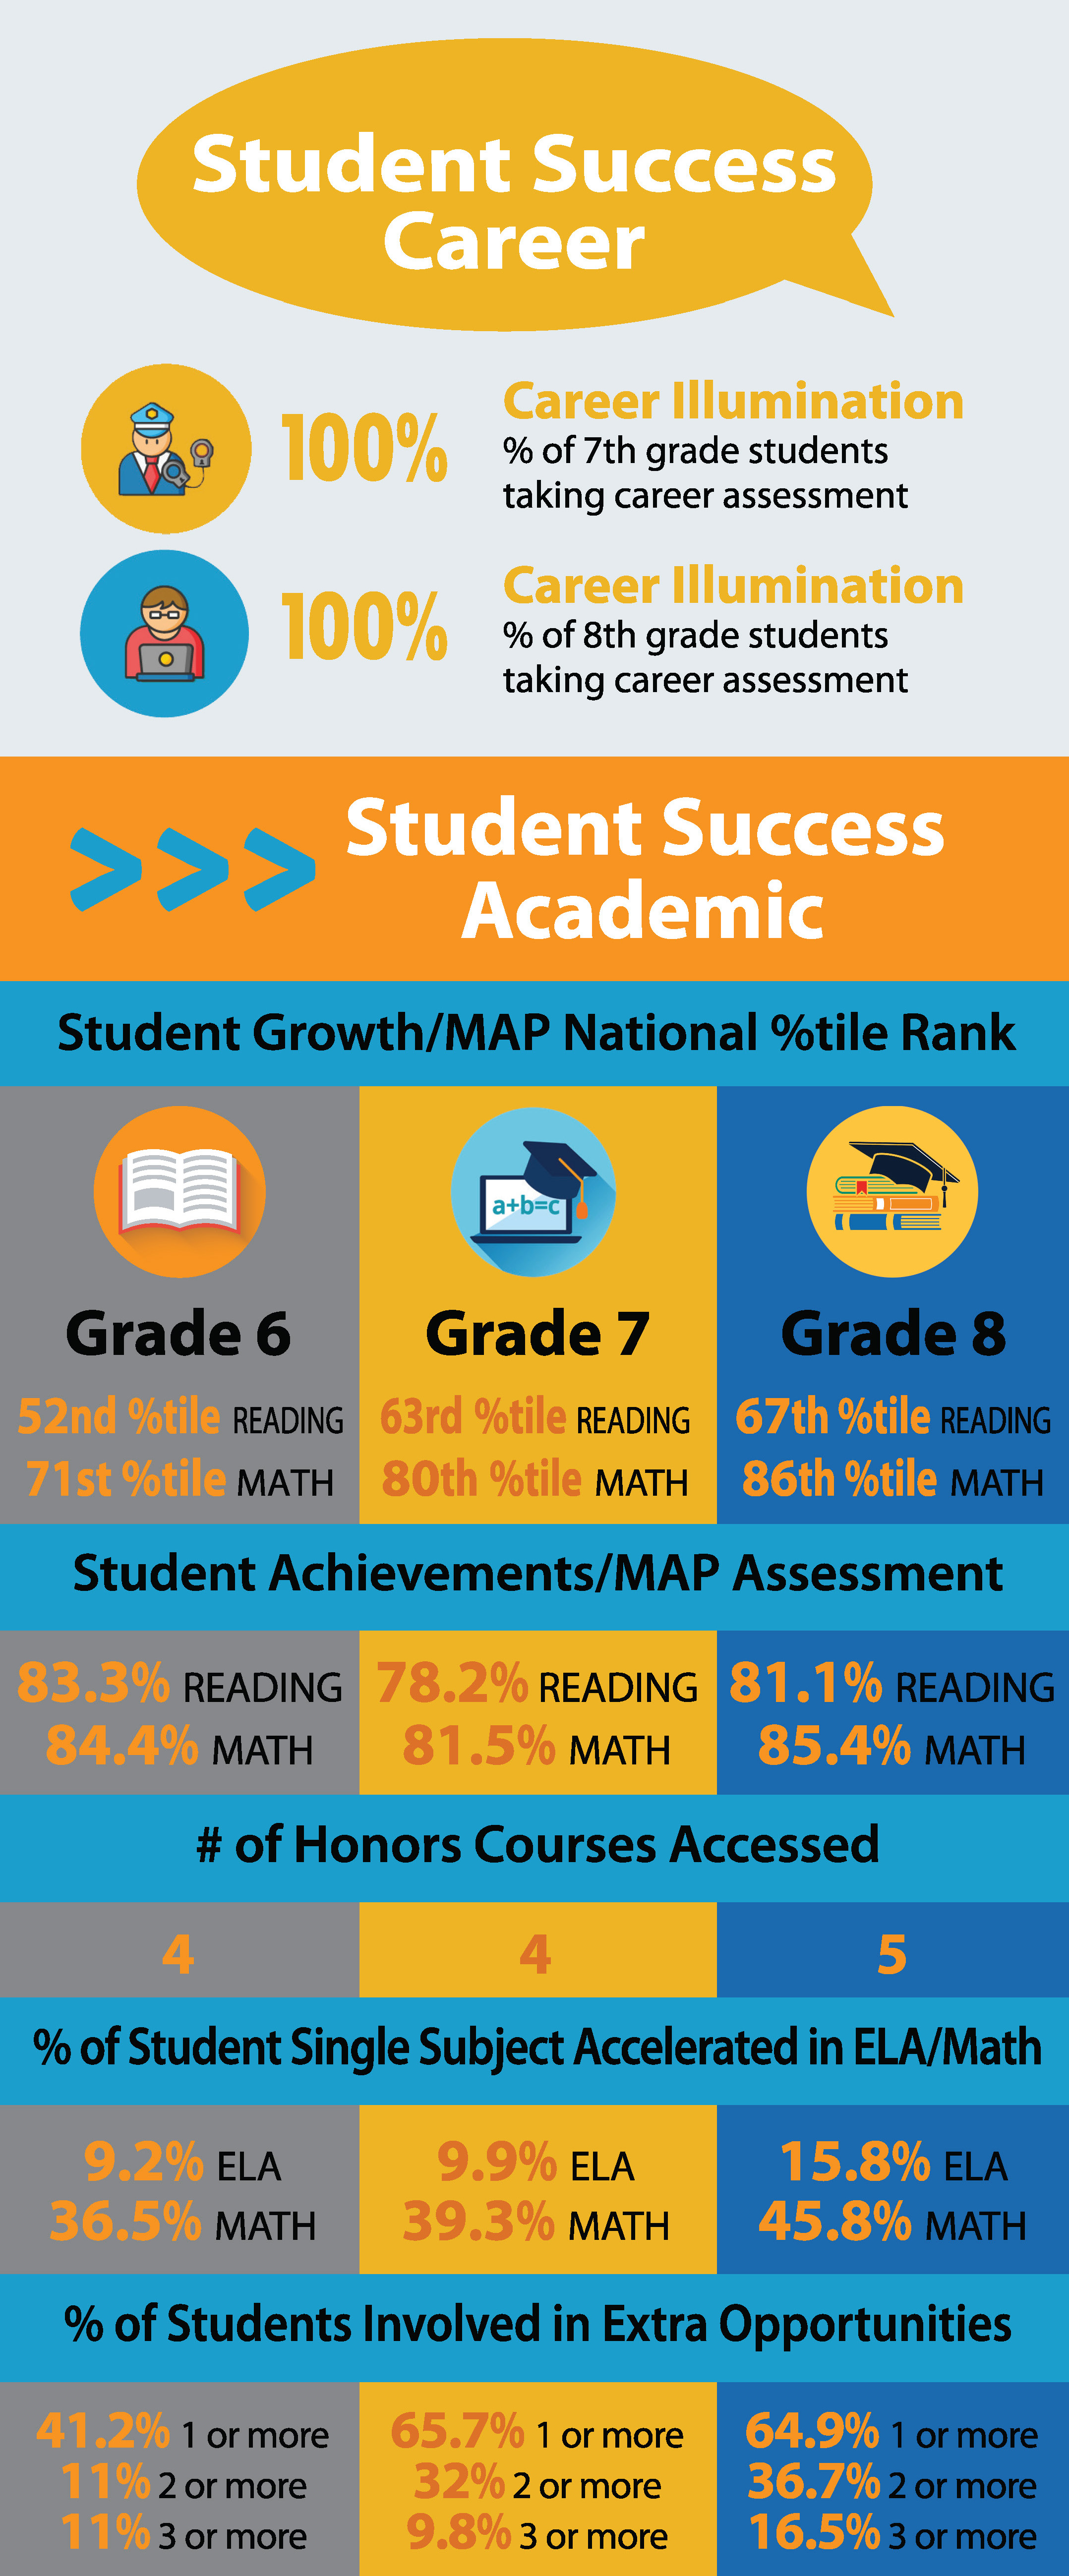 OFMS LOCAL SCORECARD - STUDENT SUCCESS